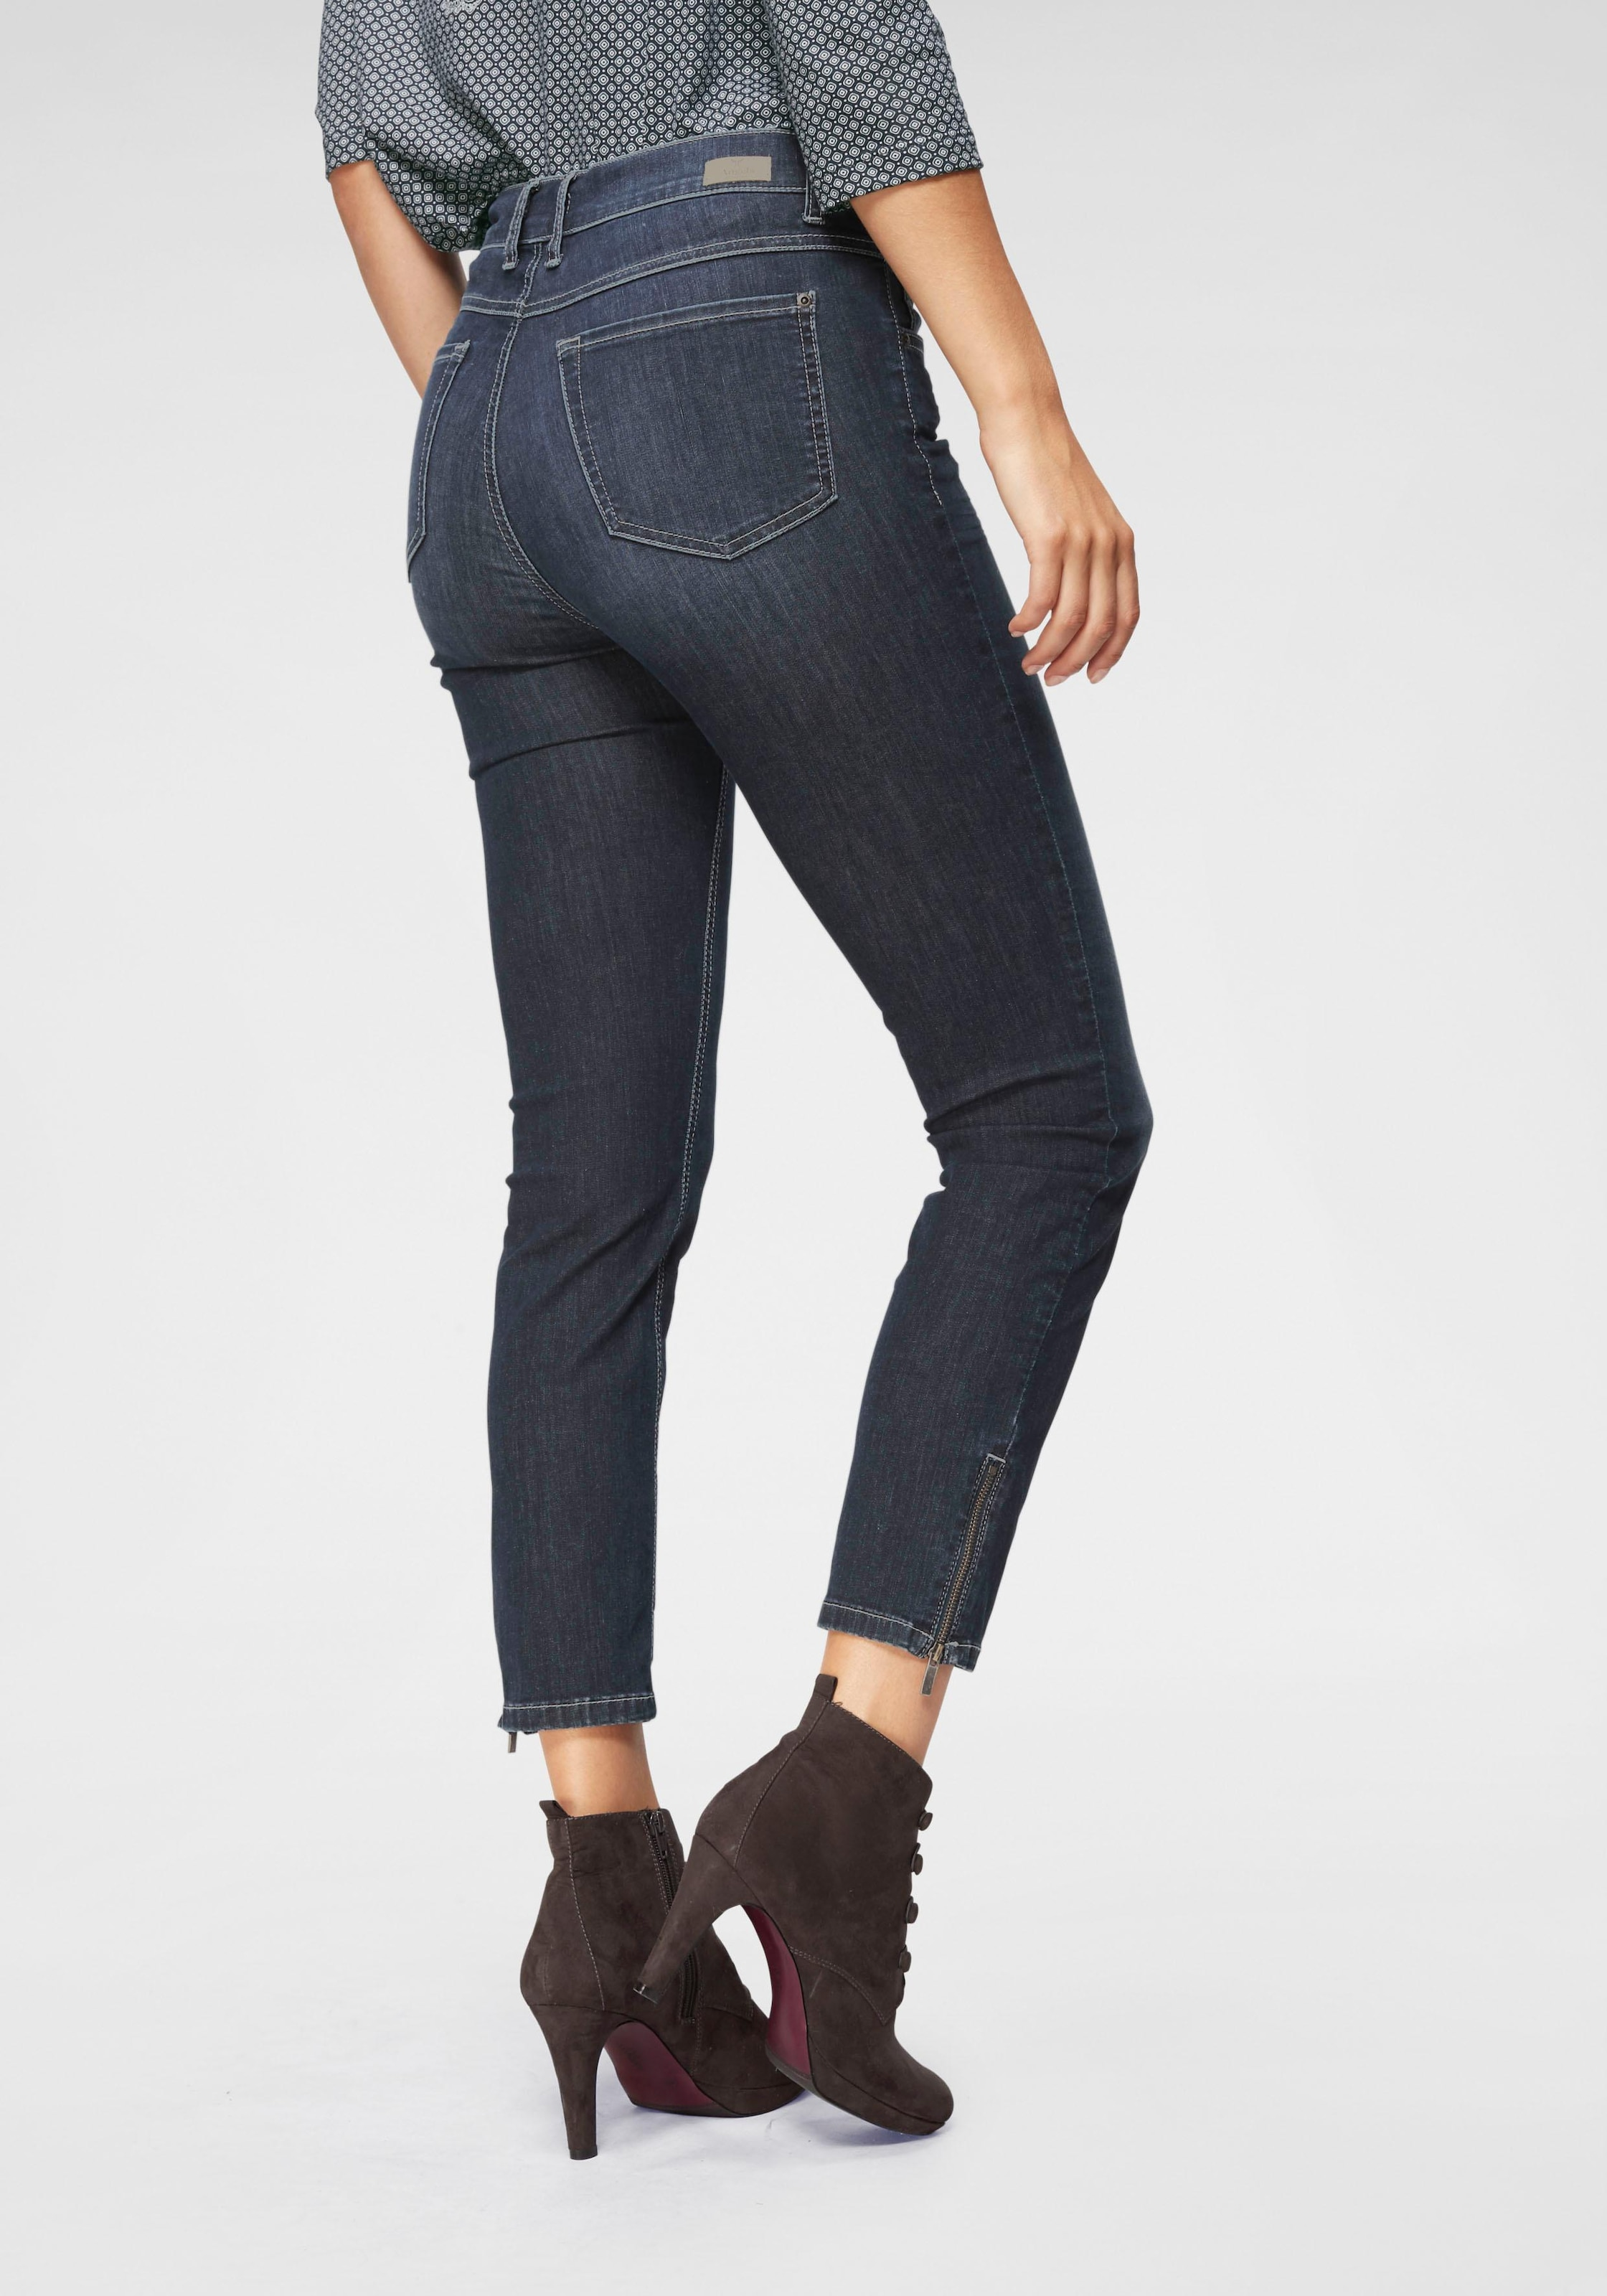 Image of ANGELS Ankle-Jeans »Skinny Ankle«